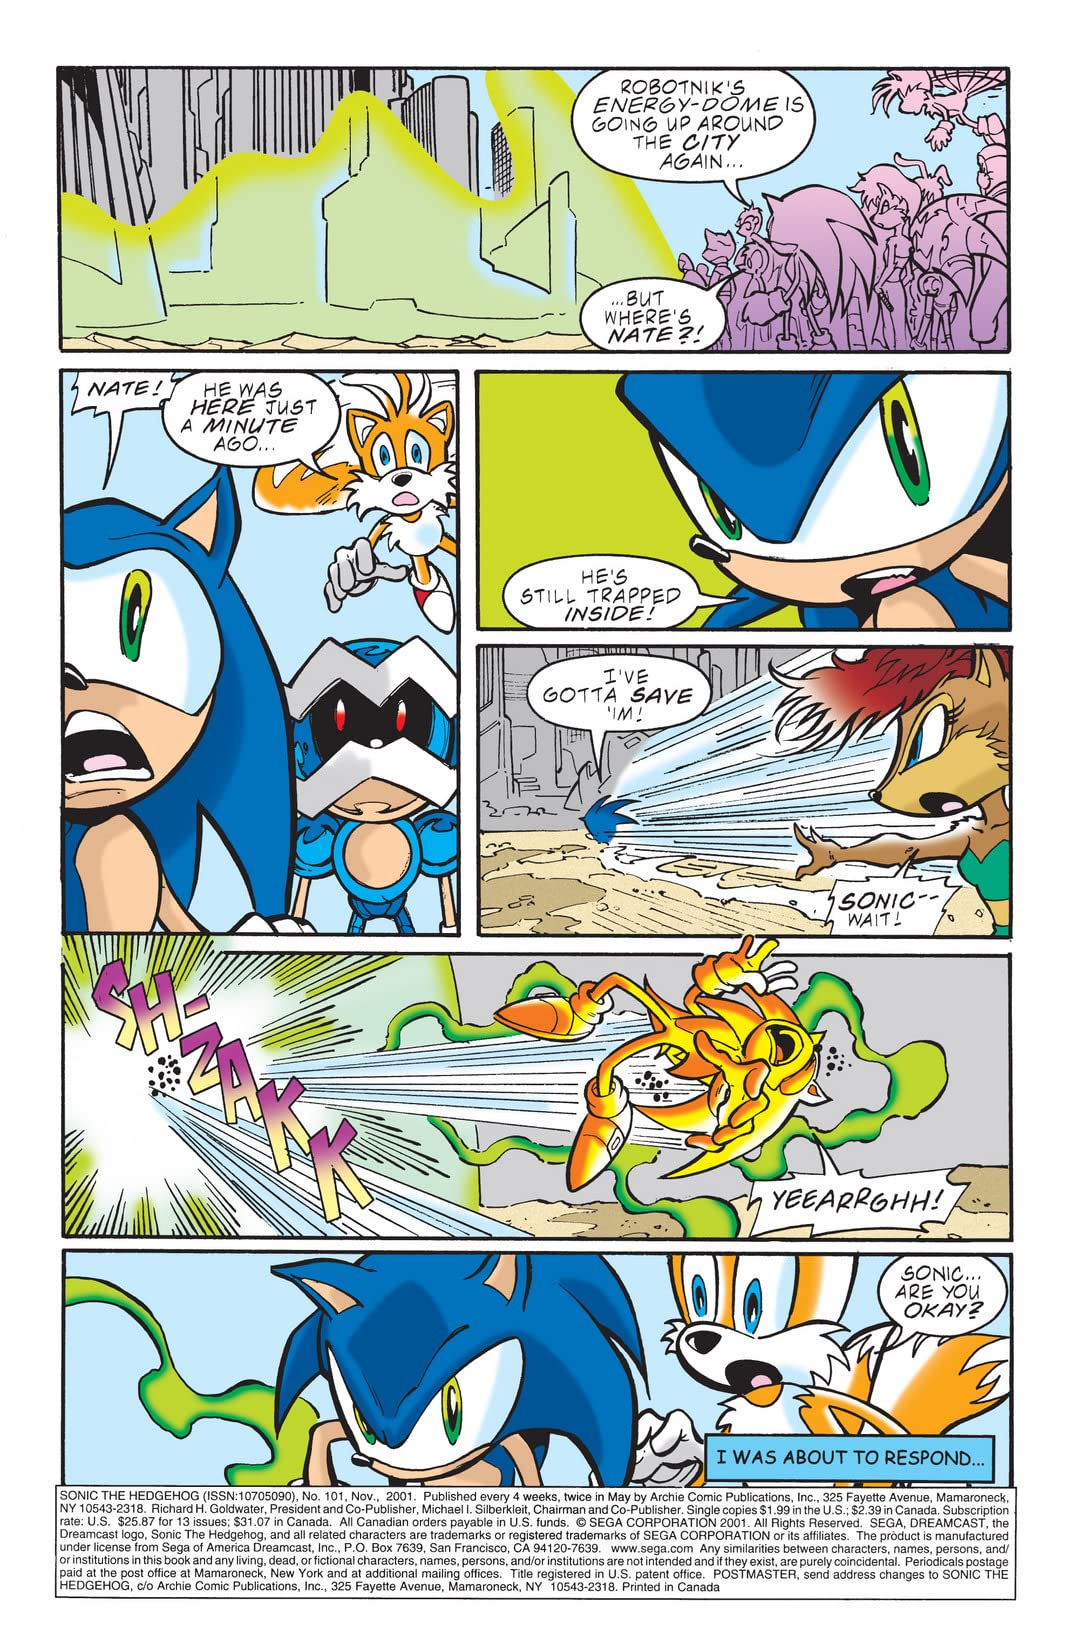 Sonic the Hedgehog #101